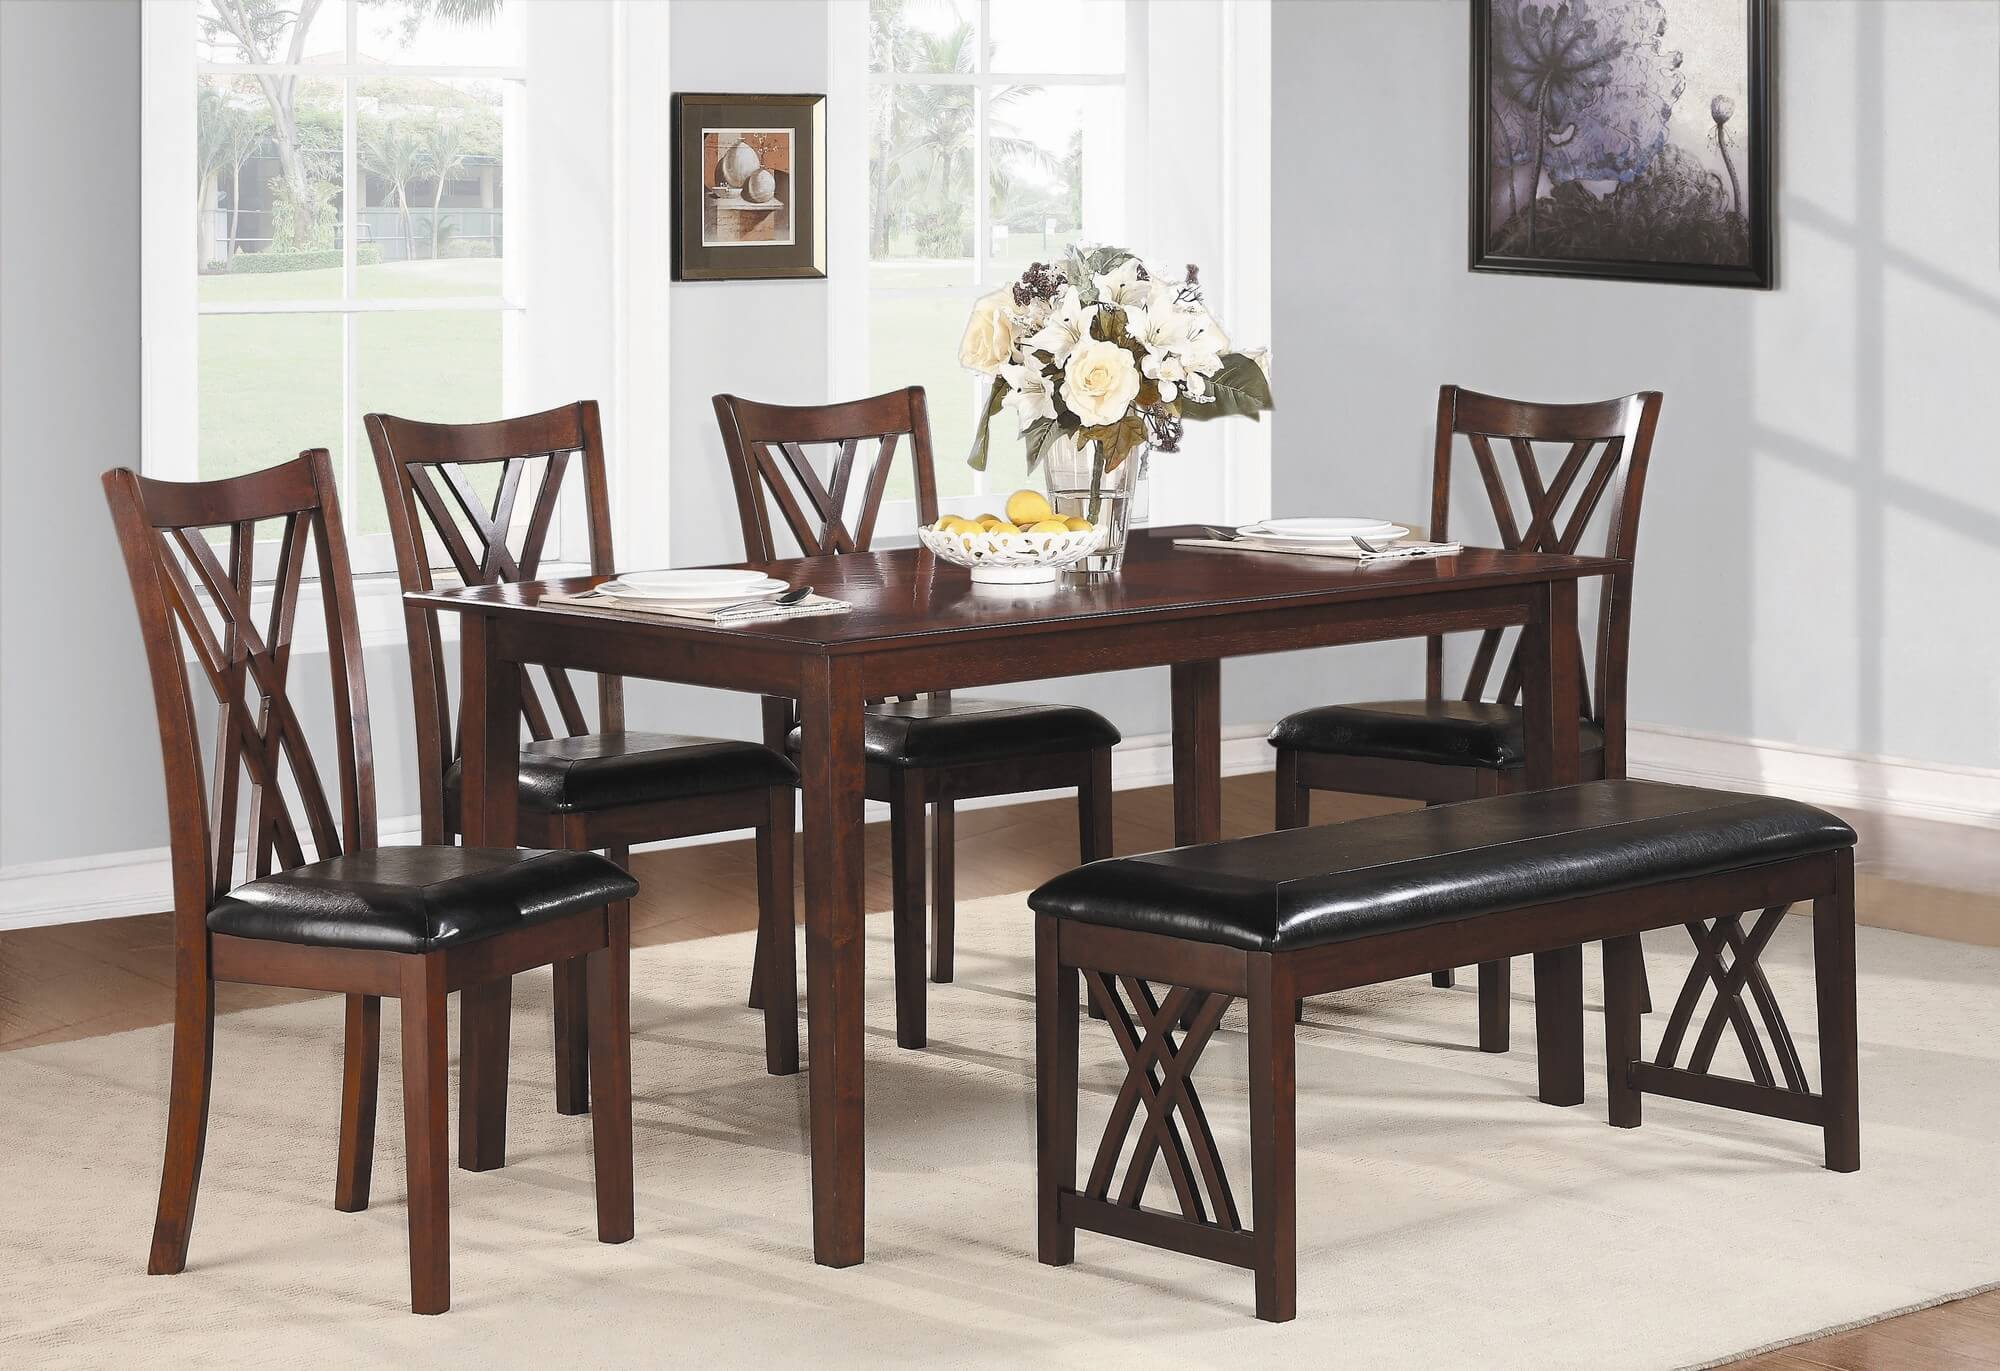 dining room sets bench seating small kitchen table set Six piece dining set with bench with a cherry finish and upholstered chairs and bench